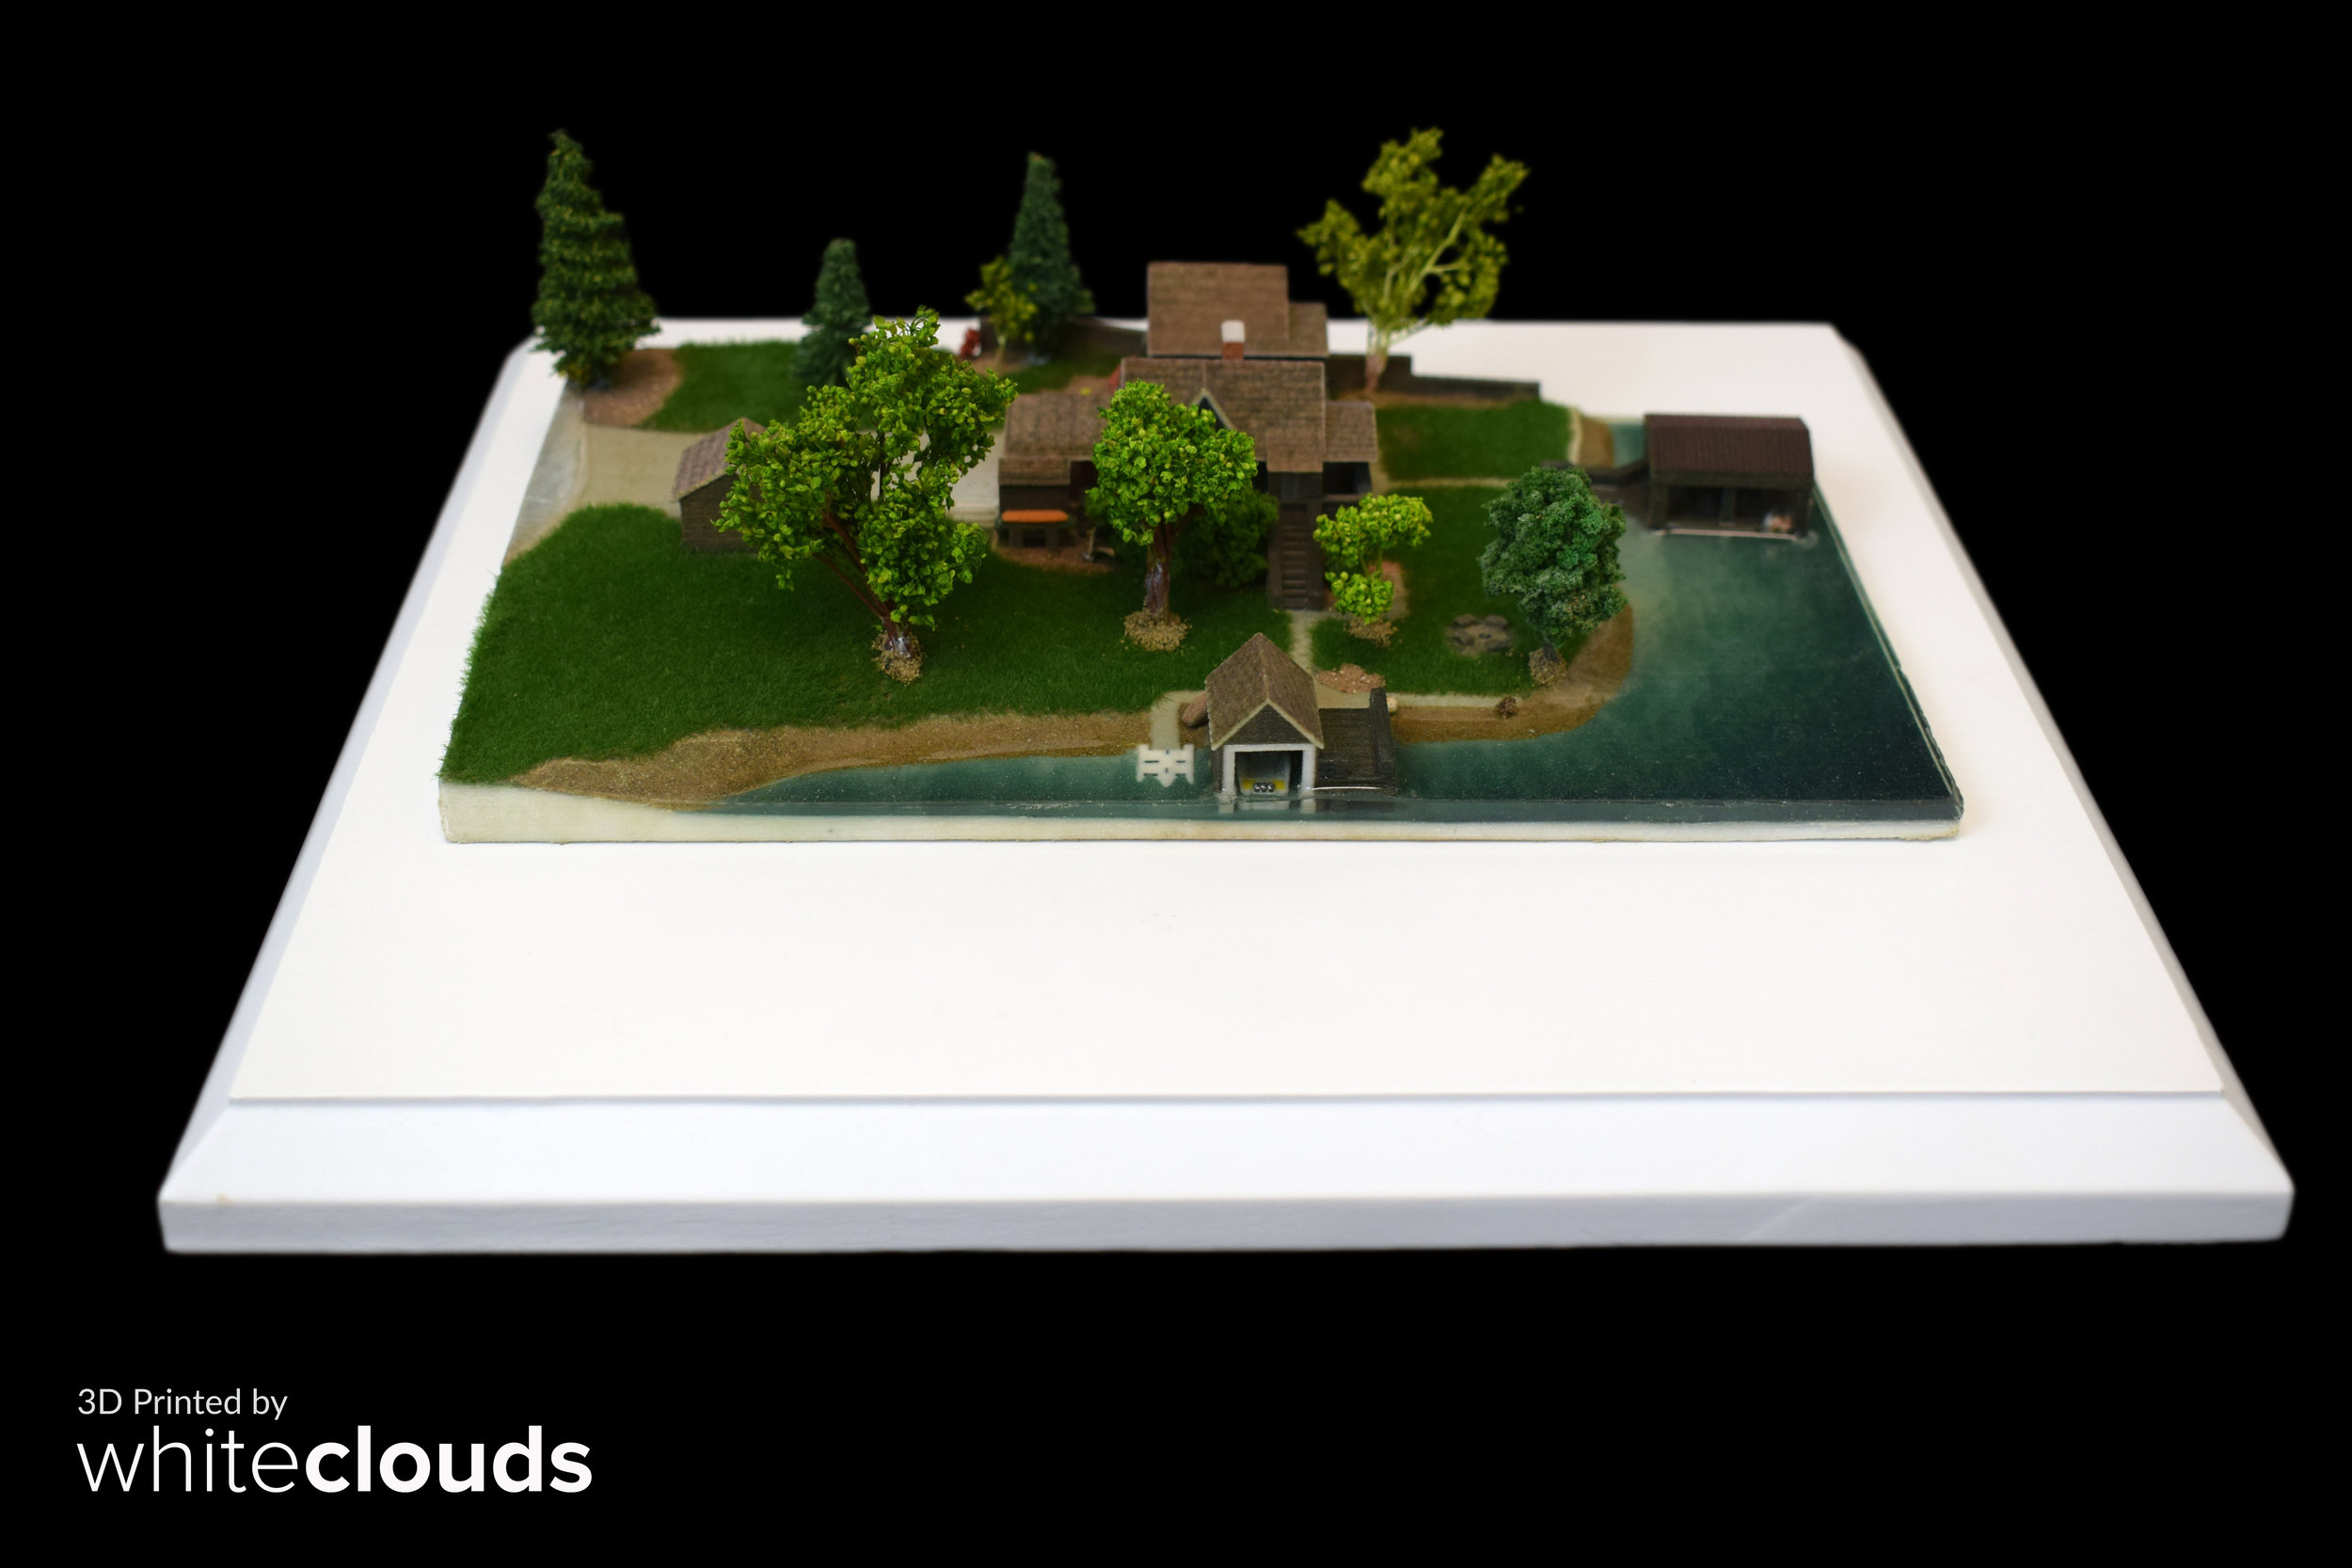 3D-Printed-WhiteClouds-Lake-House-Architecture-Eliermann-Family-Lake-House-1.JPG